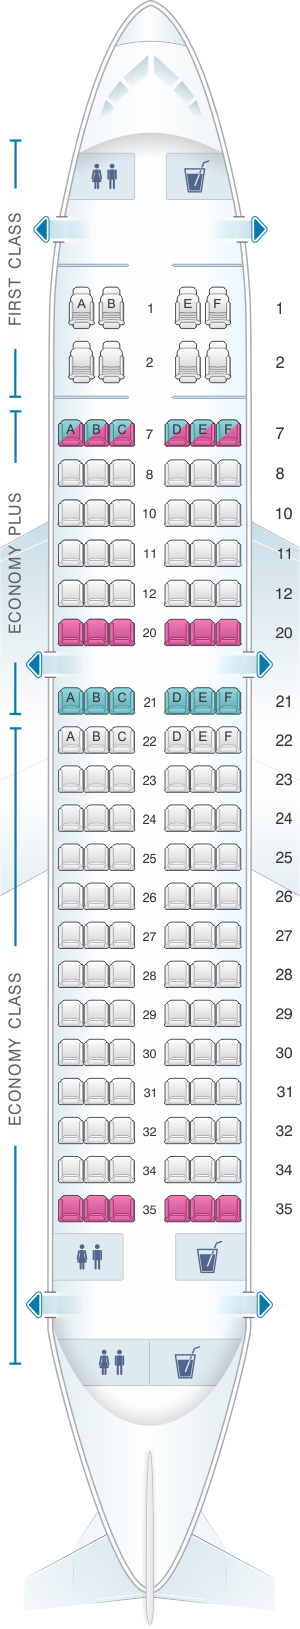 Seat map for United Airlines Airbus A319 - version 2